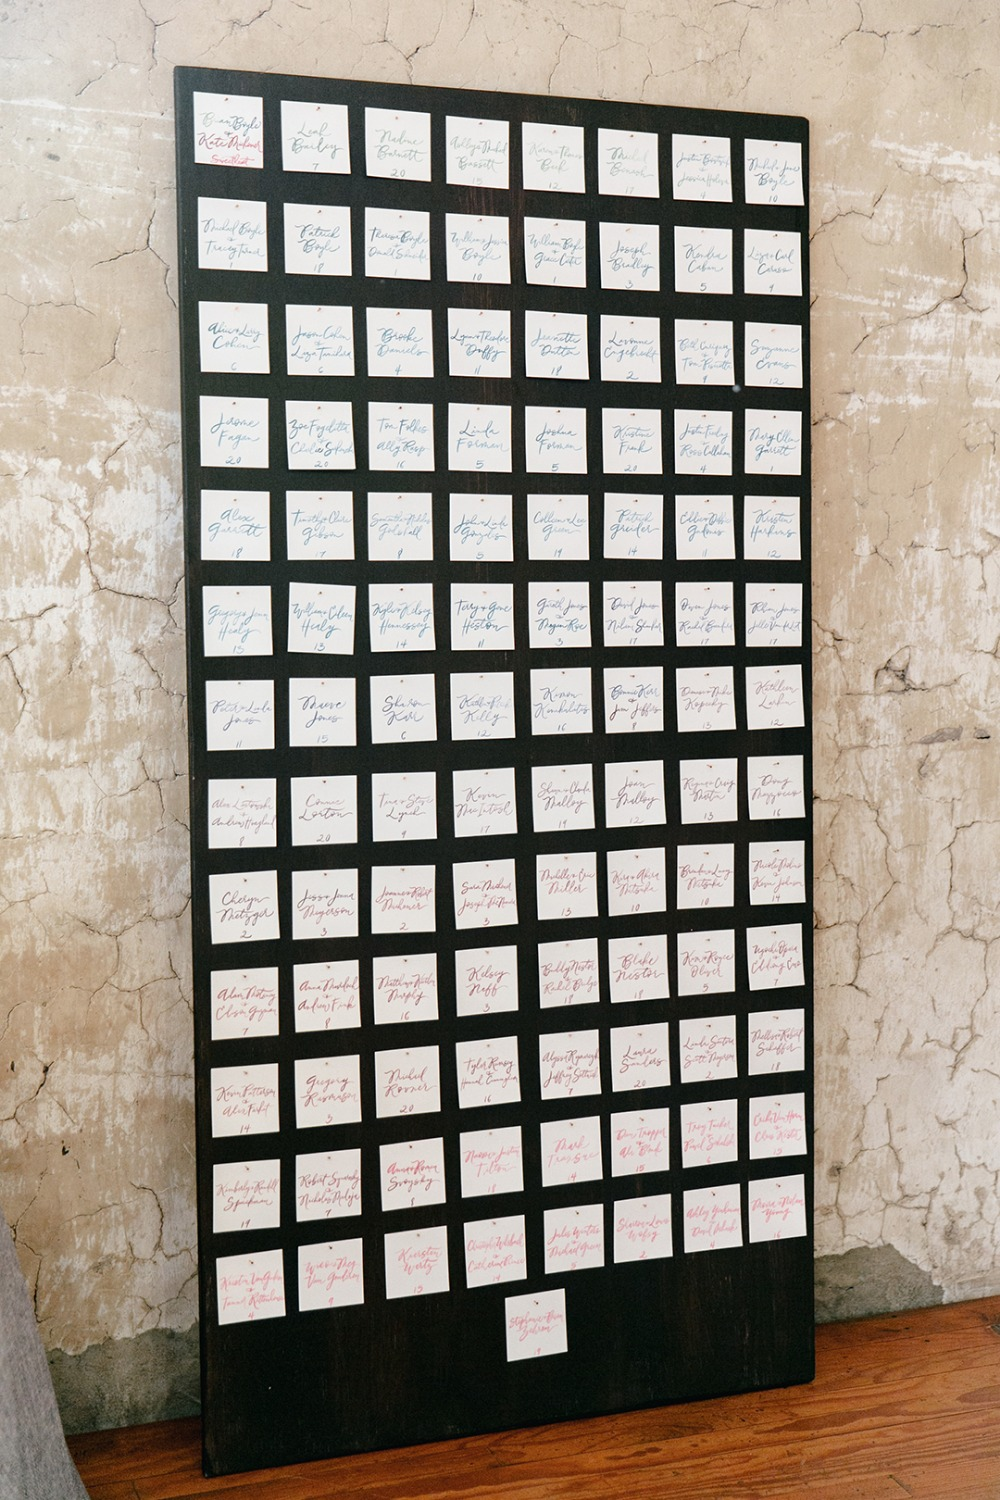 Simple calligraphy seating chart